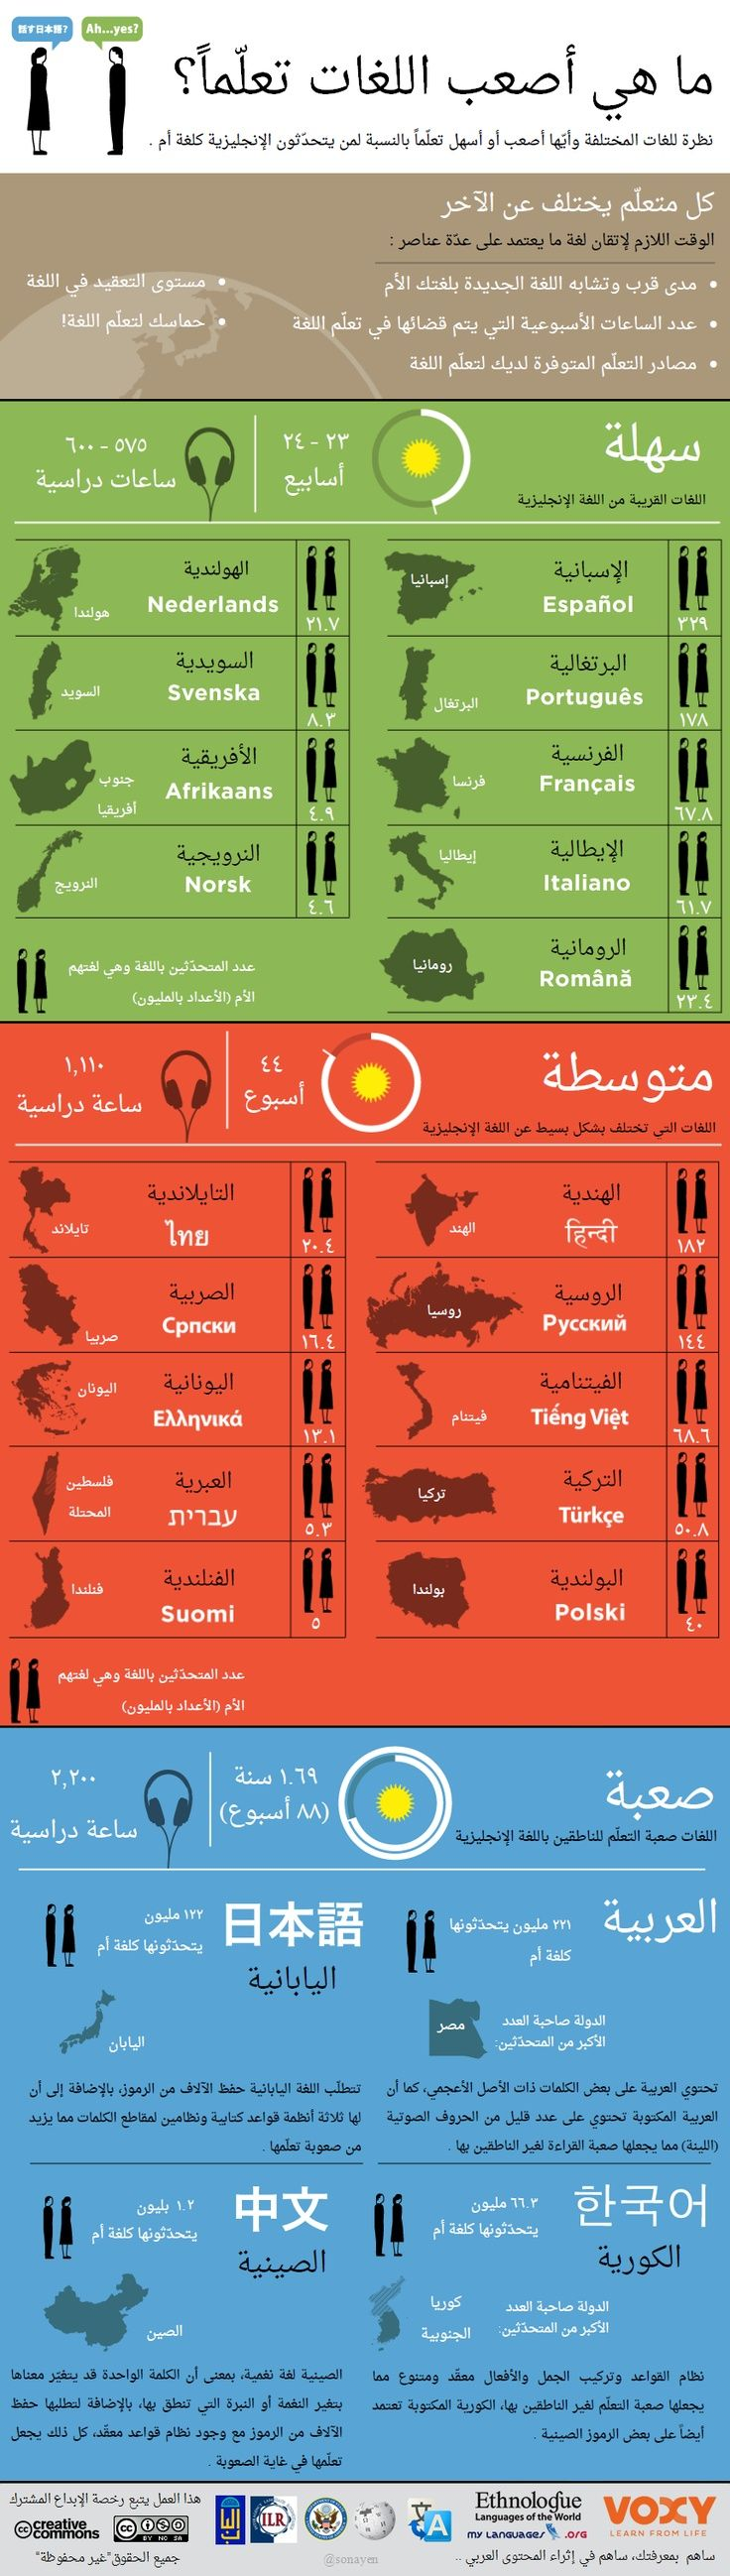 What Are The Hardest Languages To Learn An Arabic Infographic Http Itz My Com Learning Languages Learn Arabic Language English Language Learning